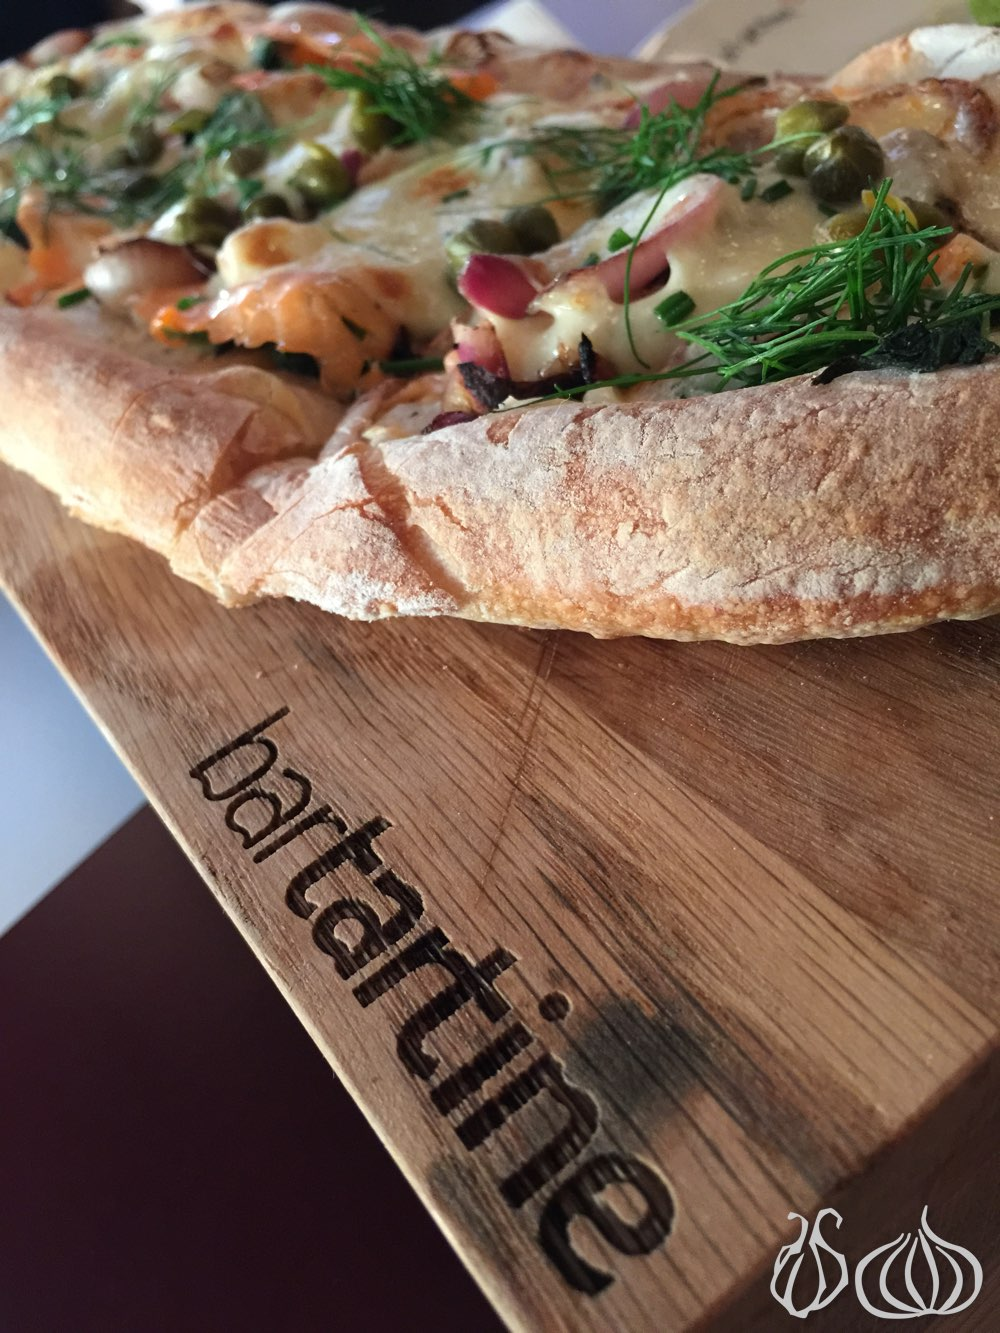 bar-tartine-dbayeh382014-11-22-09-03-122017-06-25-05-25-26